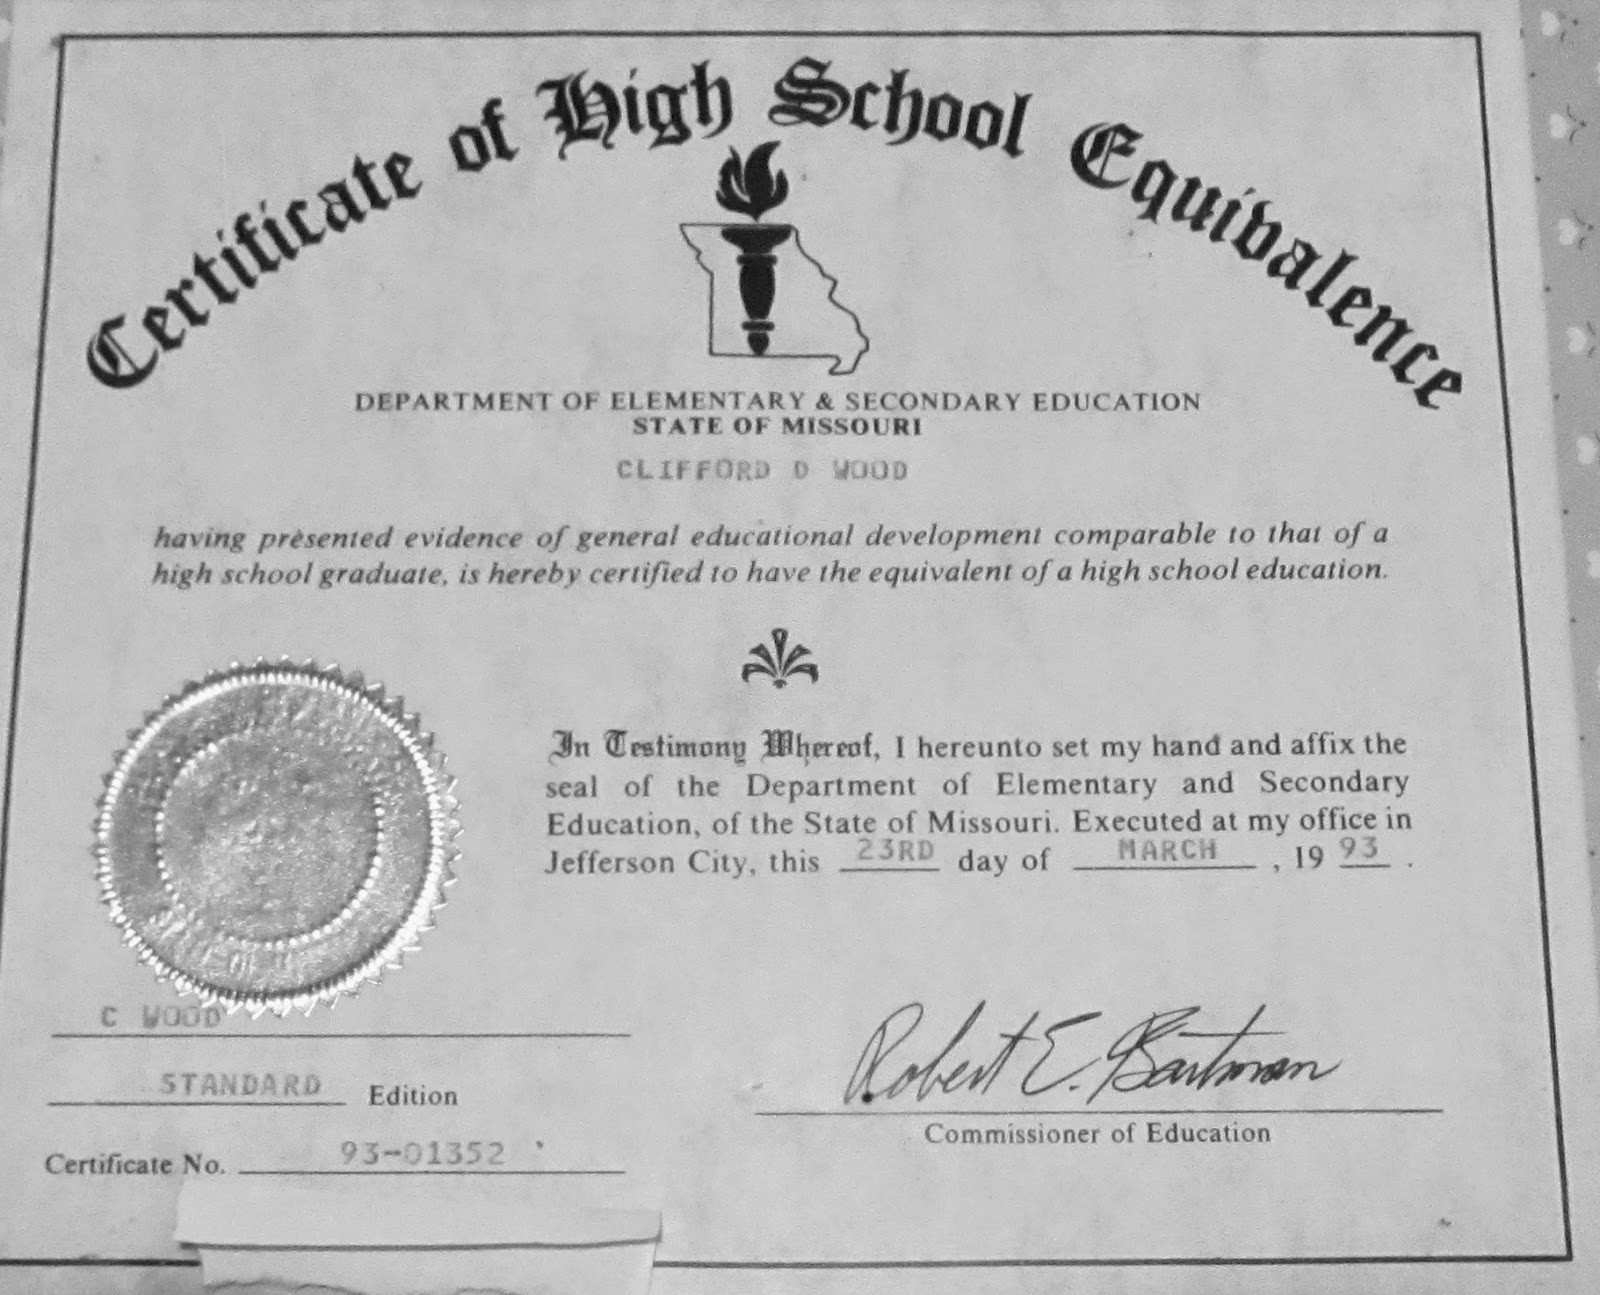 30 Simple Printable Fake Ged Certificate For Free Fu-29310 - Pro - Printable Fake Ged Certificate For Free